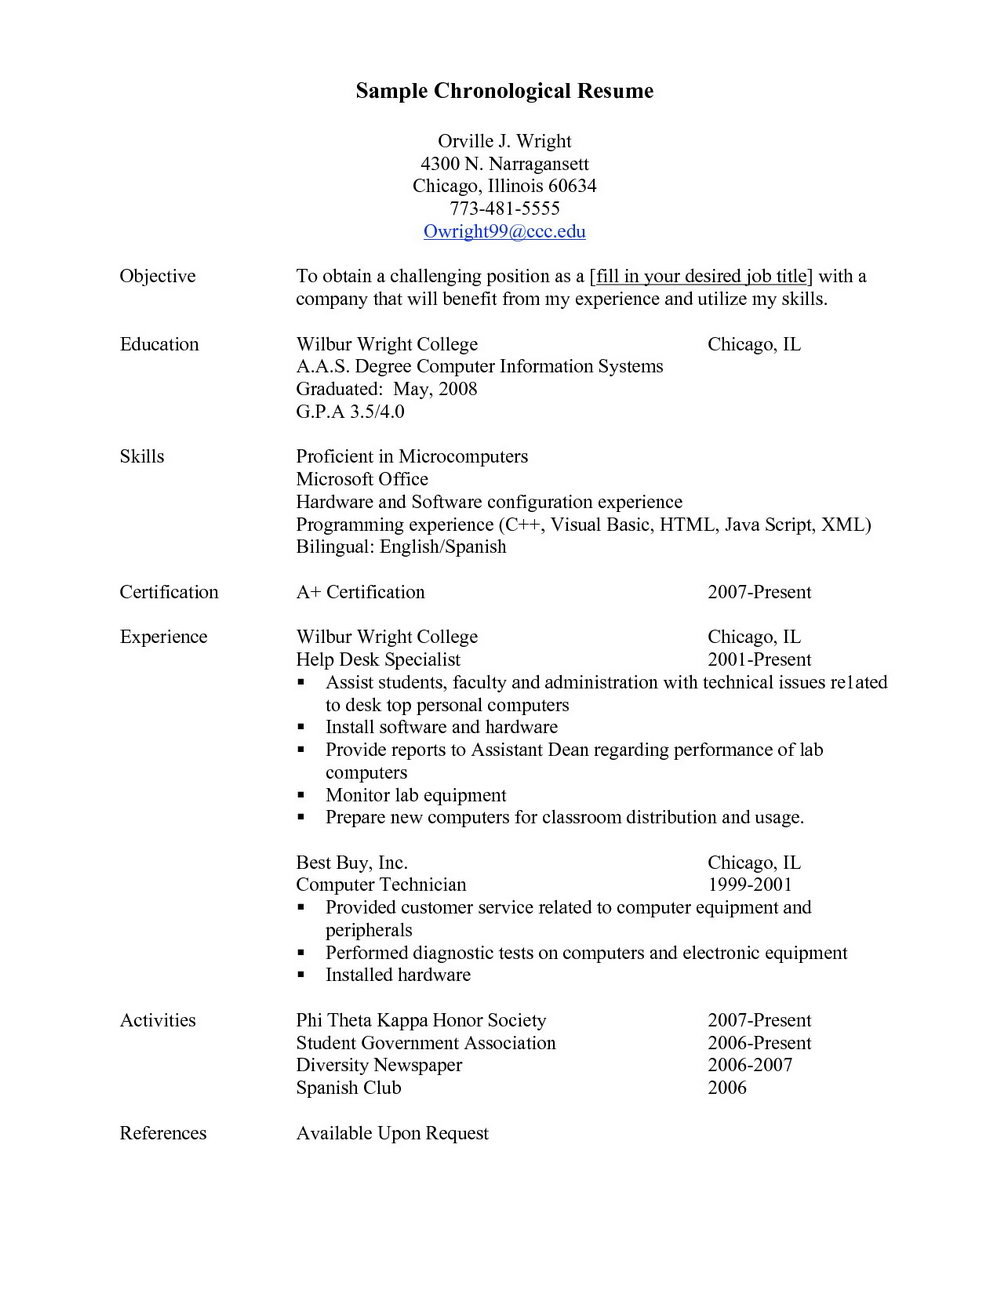 Resume Examples Chronological Resume Examples Resume Samples Per